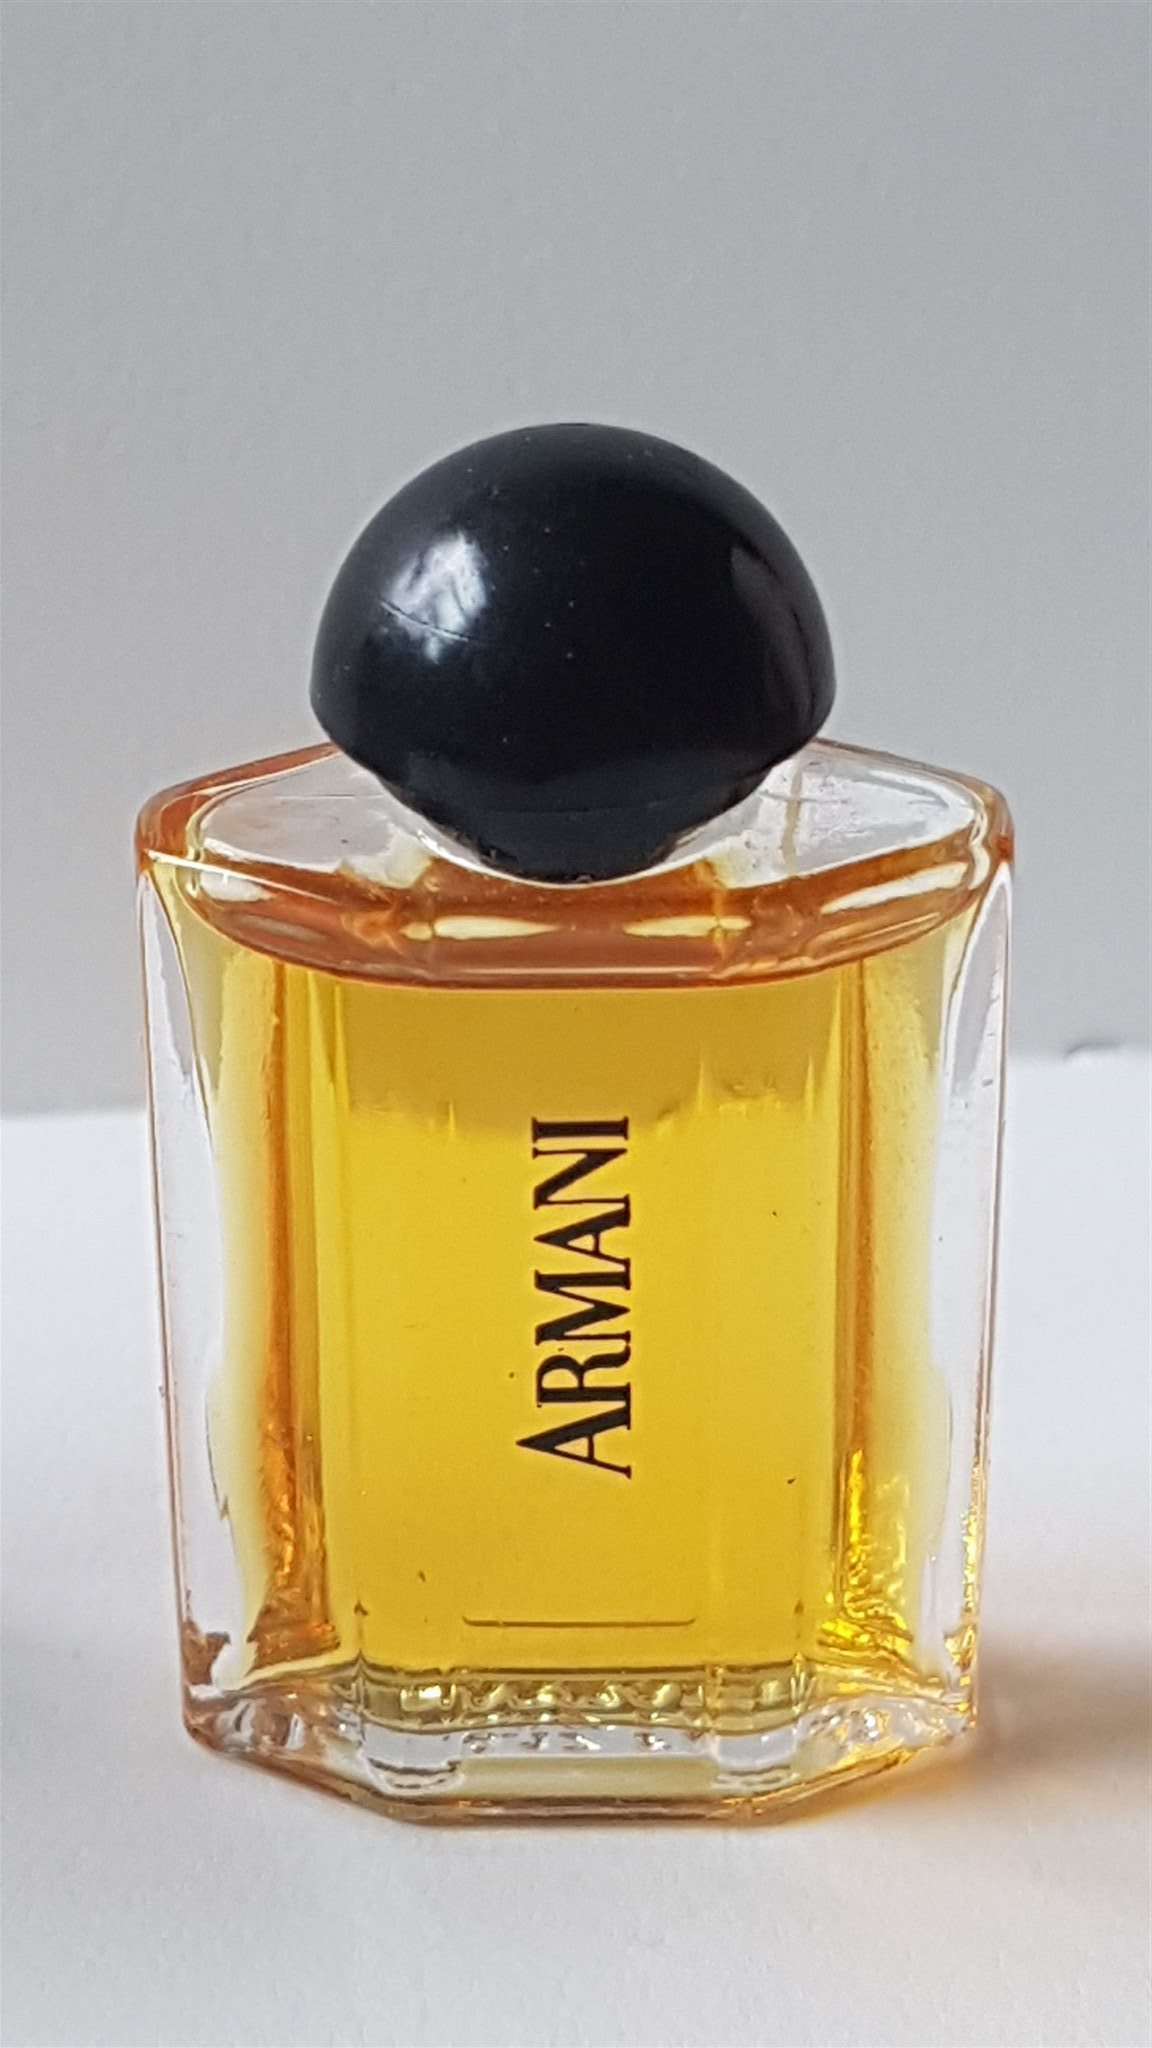 #vintage #armani #miniature #perfume #collectible